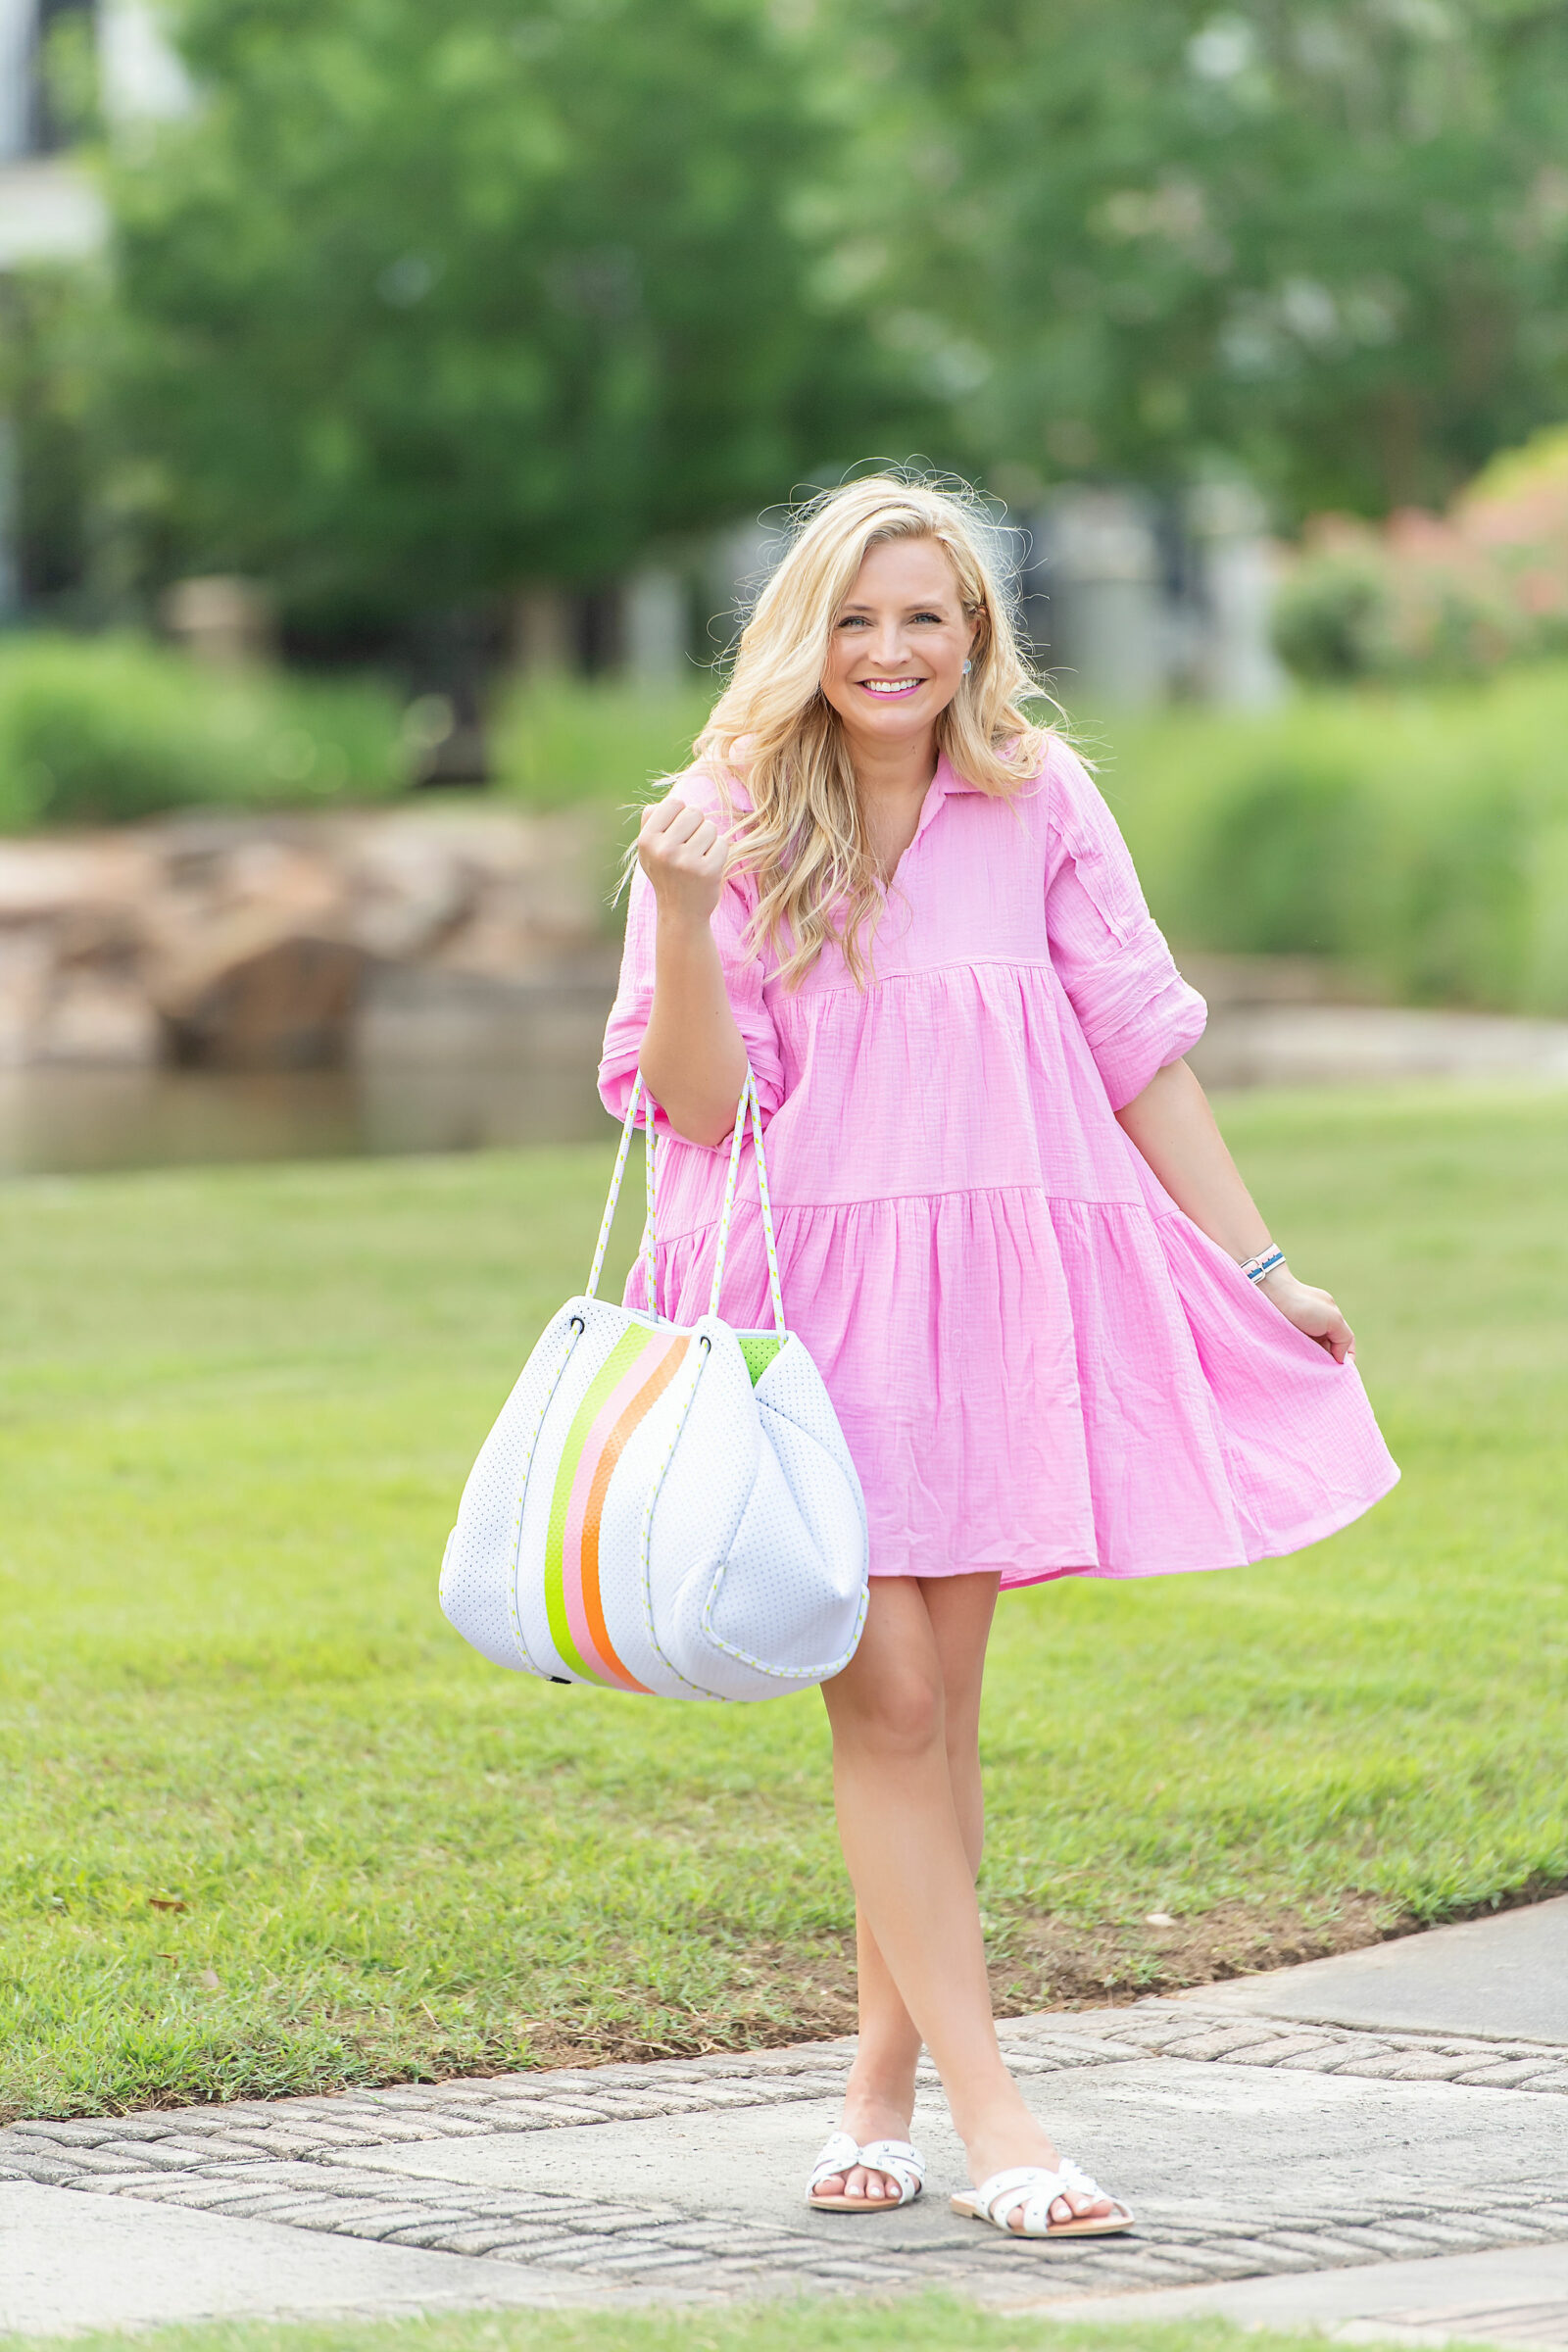 Social Threads Summer Handbag by popular Houston fashion blog, The House of Fancy: image of a woman standing outside and wearing a pink babydoll dress and hold a white Social Threads Summer Handbag with green, pink, and orange stripes.